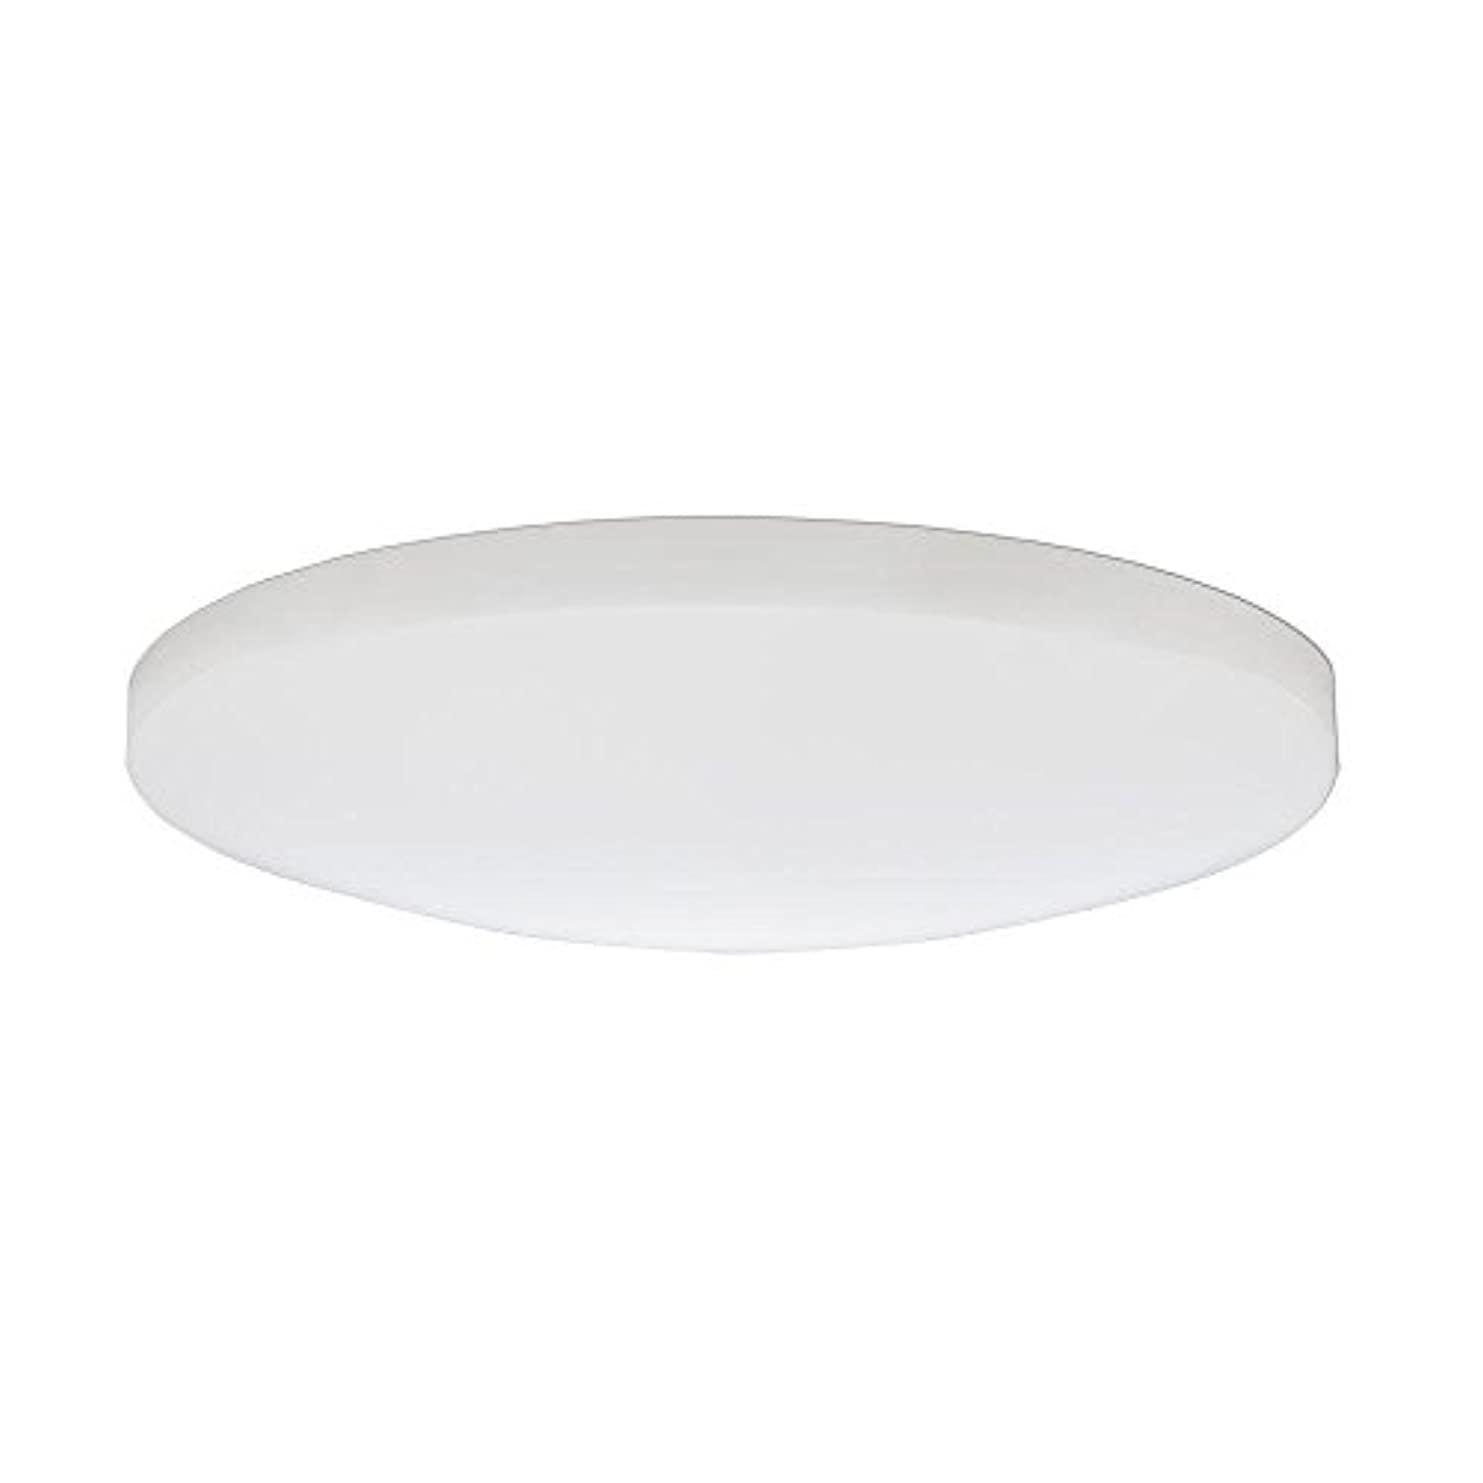 ネックレスチーター雨のLithonia Lighting DSATL16 M4 Replacement Glass Diffuser, 16', White [並行輸入品]